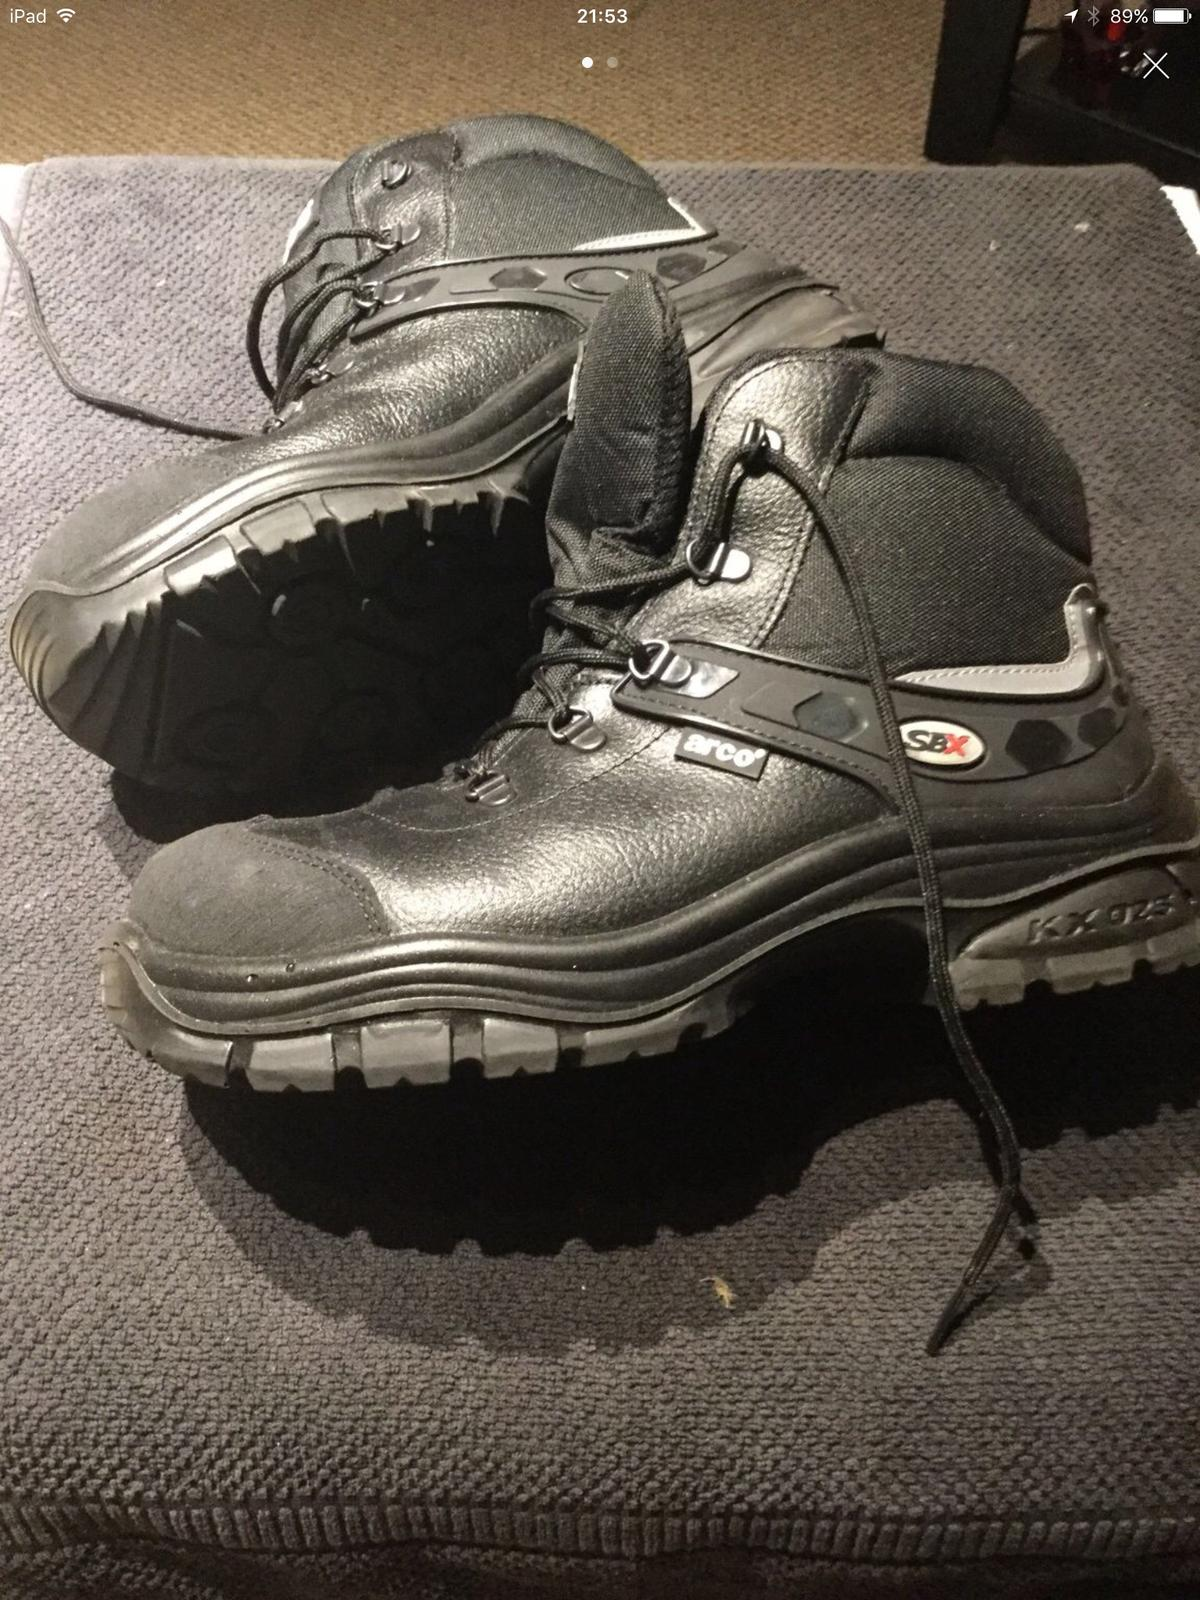 Arco boots sbx size 9 uk 43 £40 new